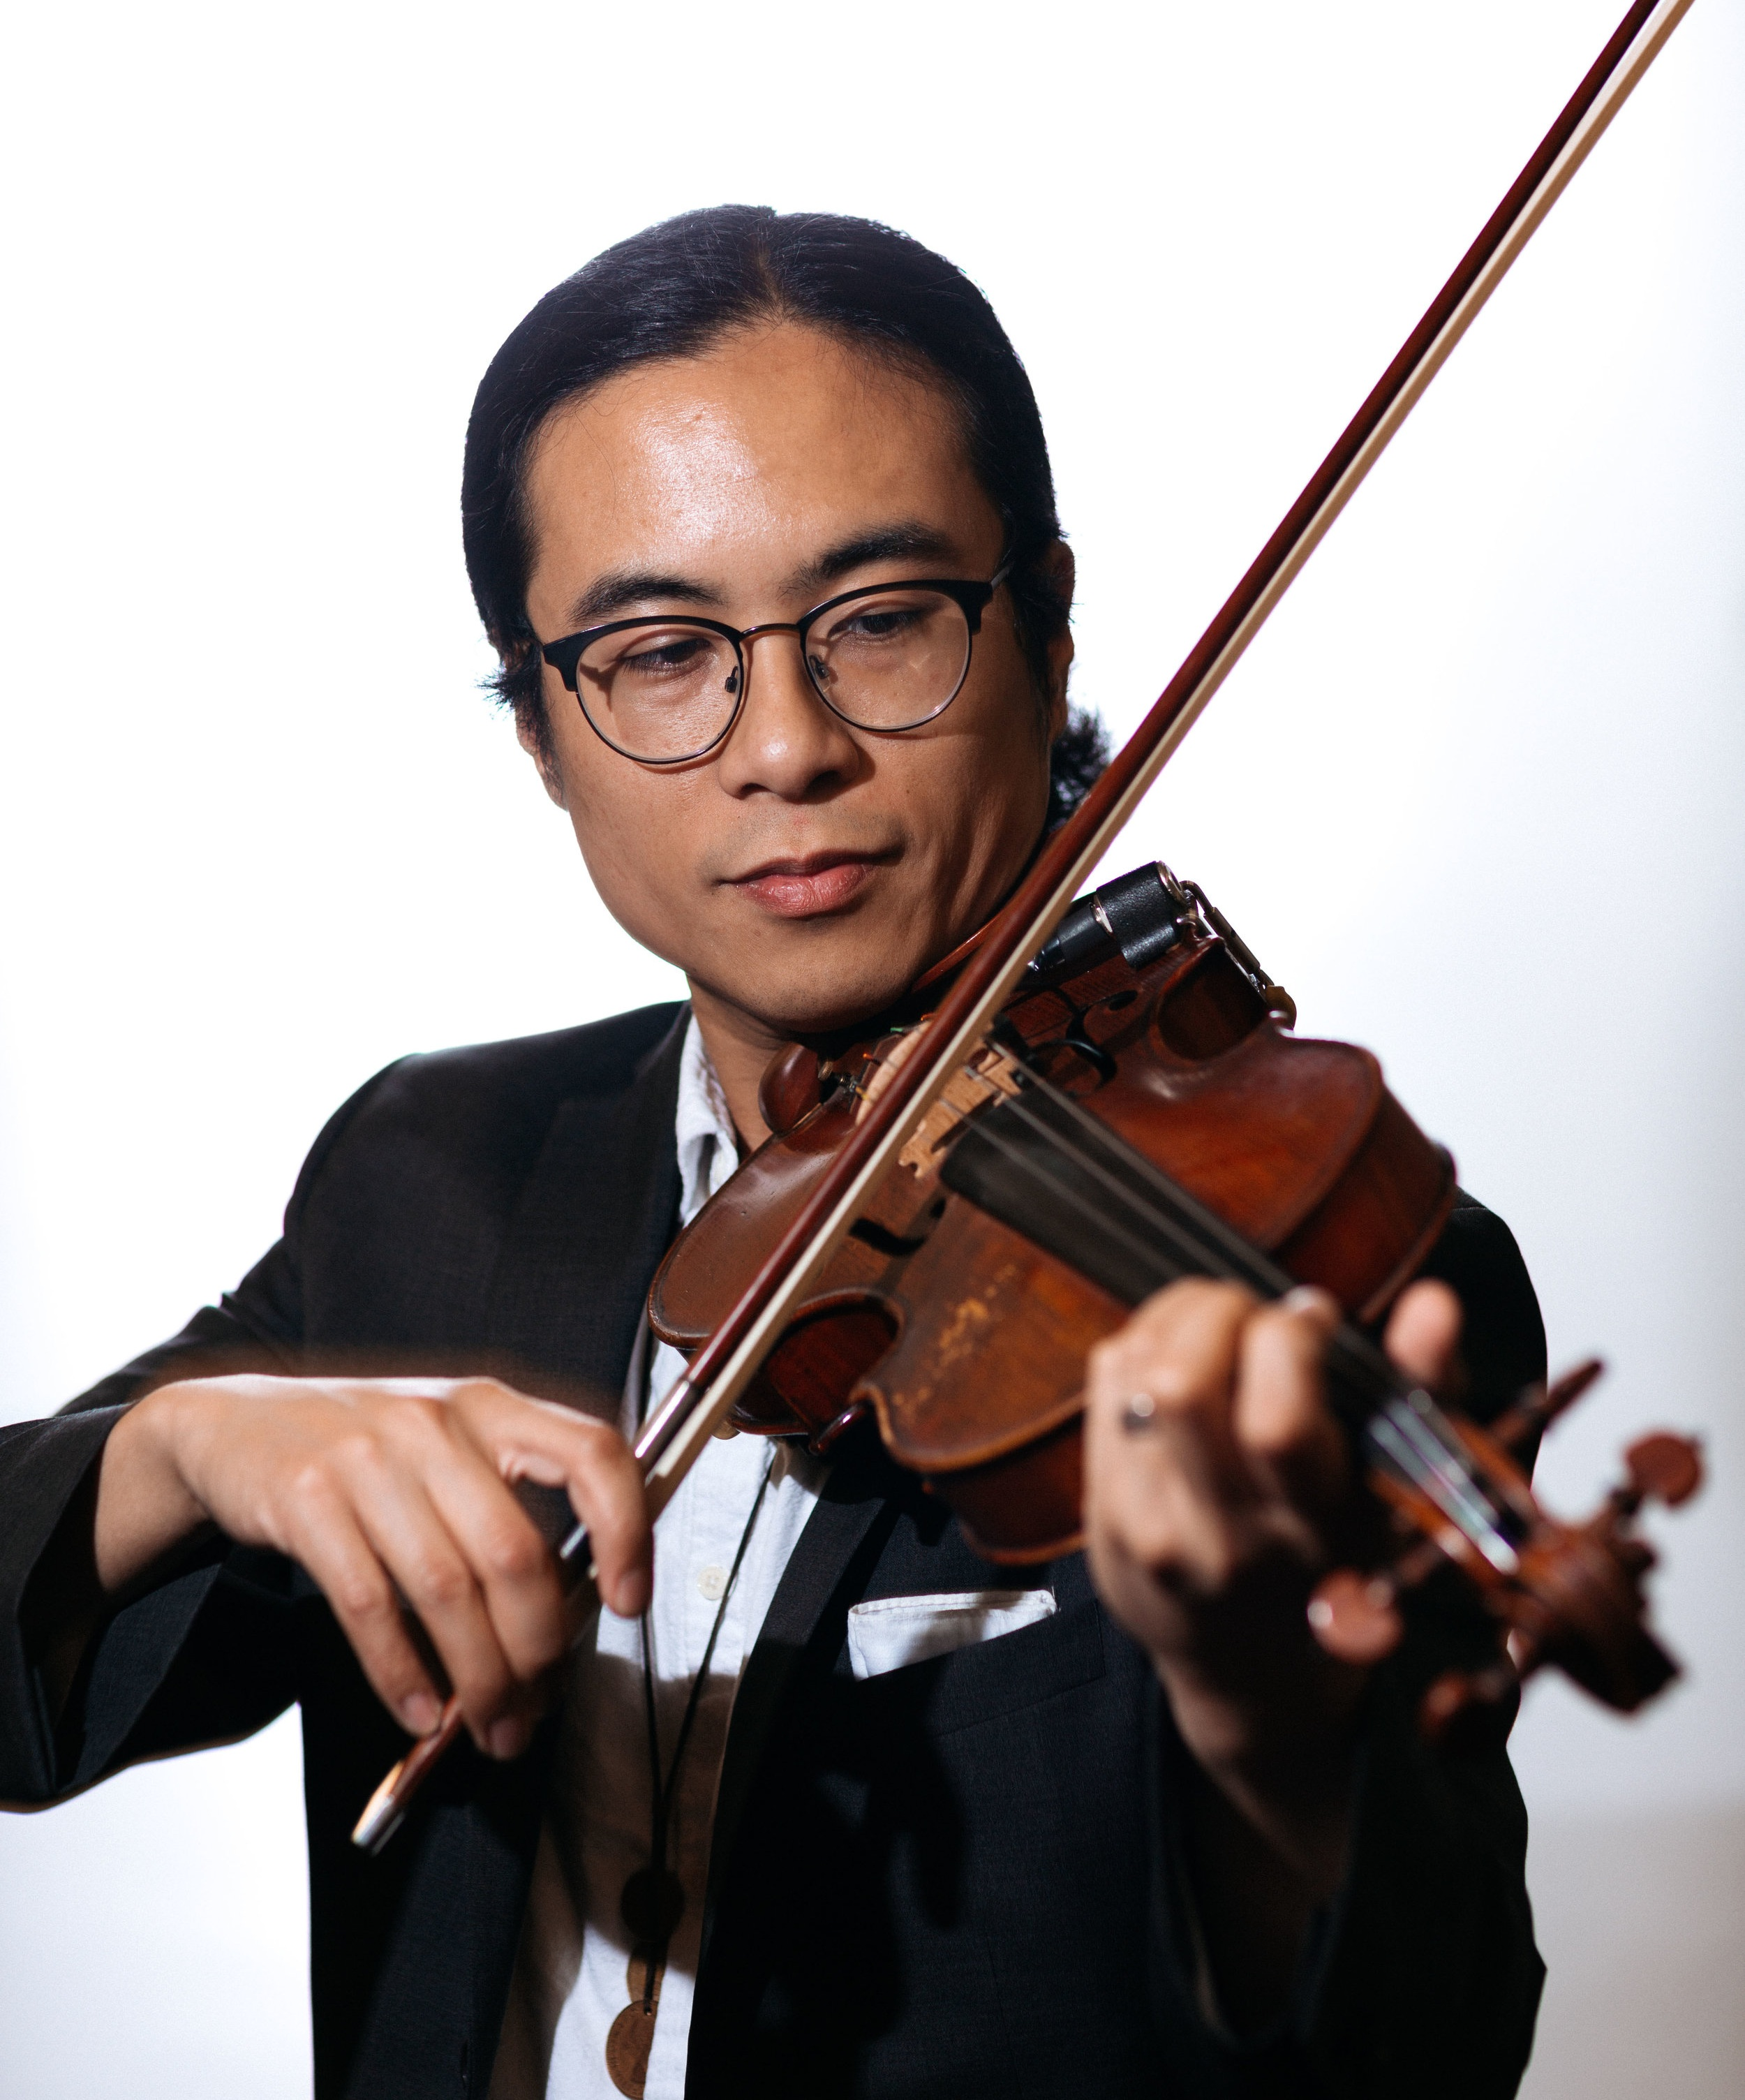 Leoncarlo Canlas  {he/him}  music   Armed with his violin, North Texas based musician Leoncarlo creates sonic landscapes with a palette of harmonious textures that stretches perception of tonal aesthetics. He's been a guest collaborator and session musician on recordings and live performances for a number of diverse national and international acts, including Seryn, Botany, Polyphonic Spree, Alejandro Escovedo, Melanie Safka, and more.   leoncarlo.com  /  Instagram  /  Facebook